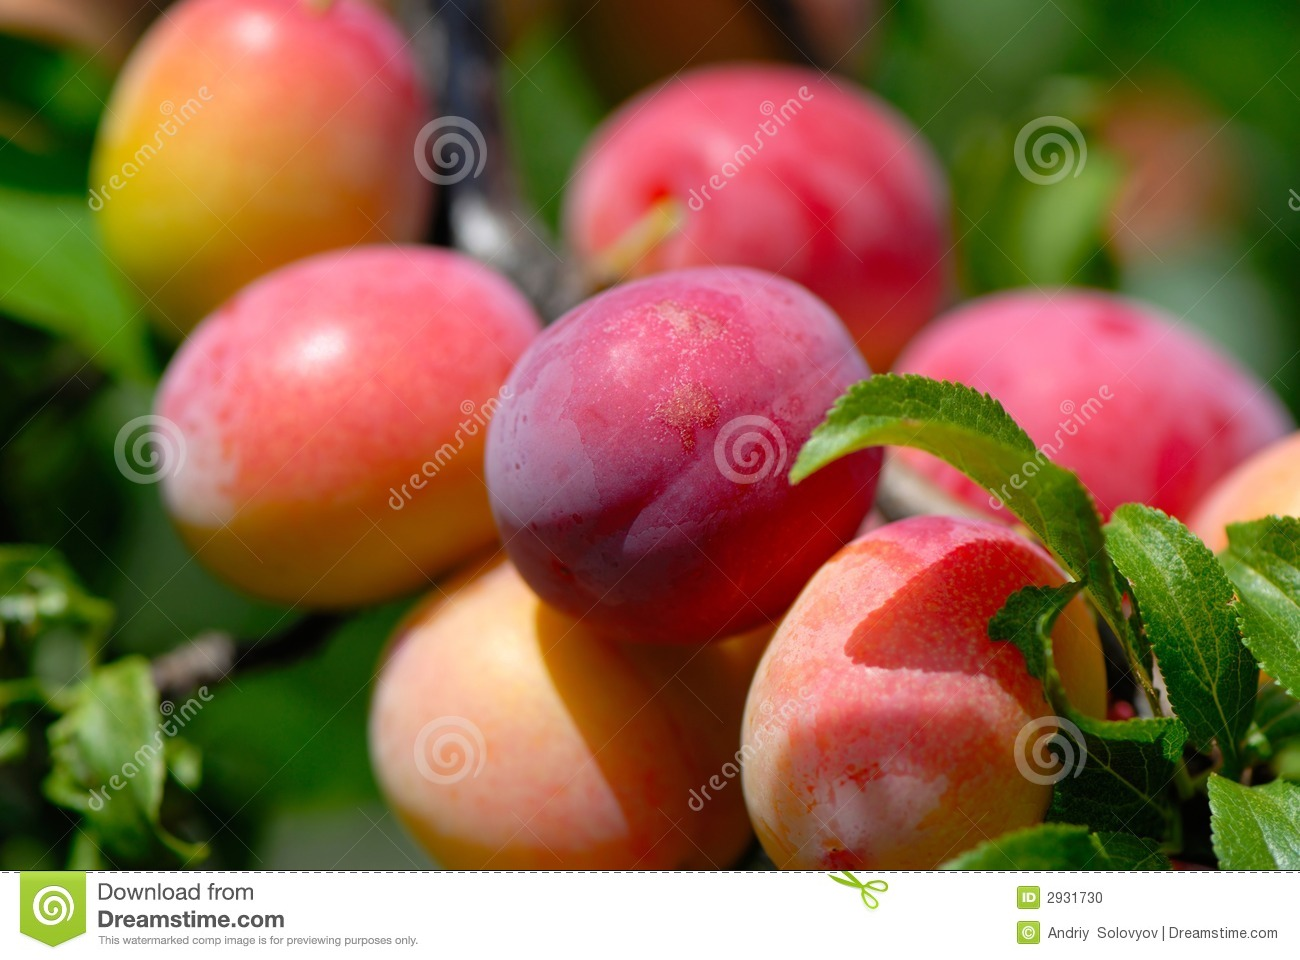 Fruits ripe plums